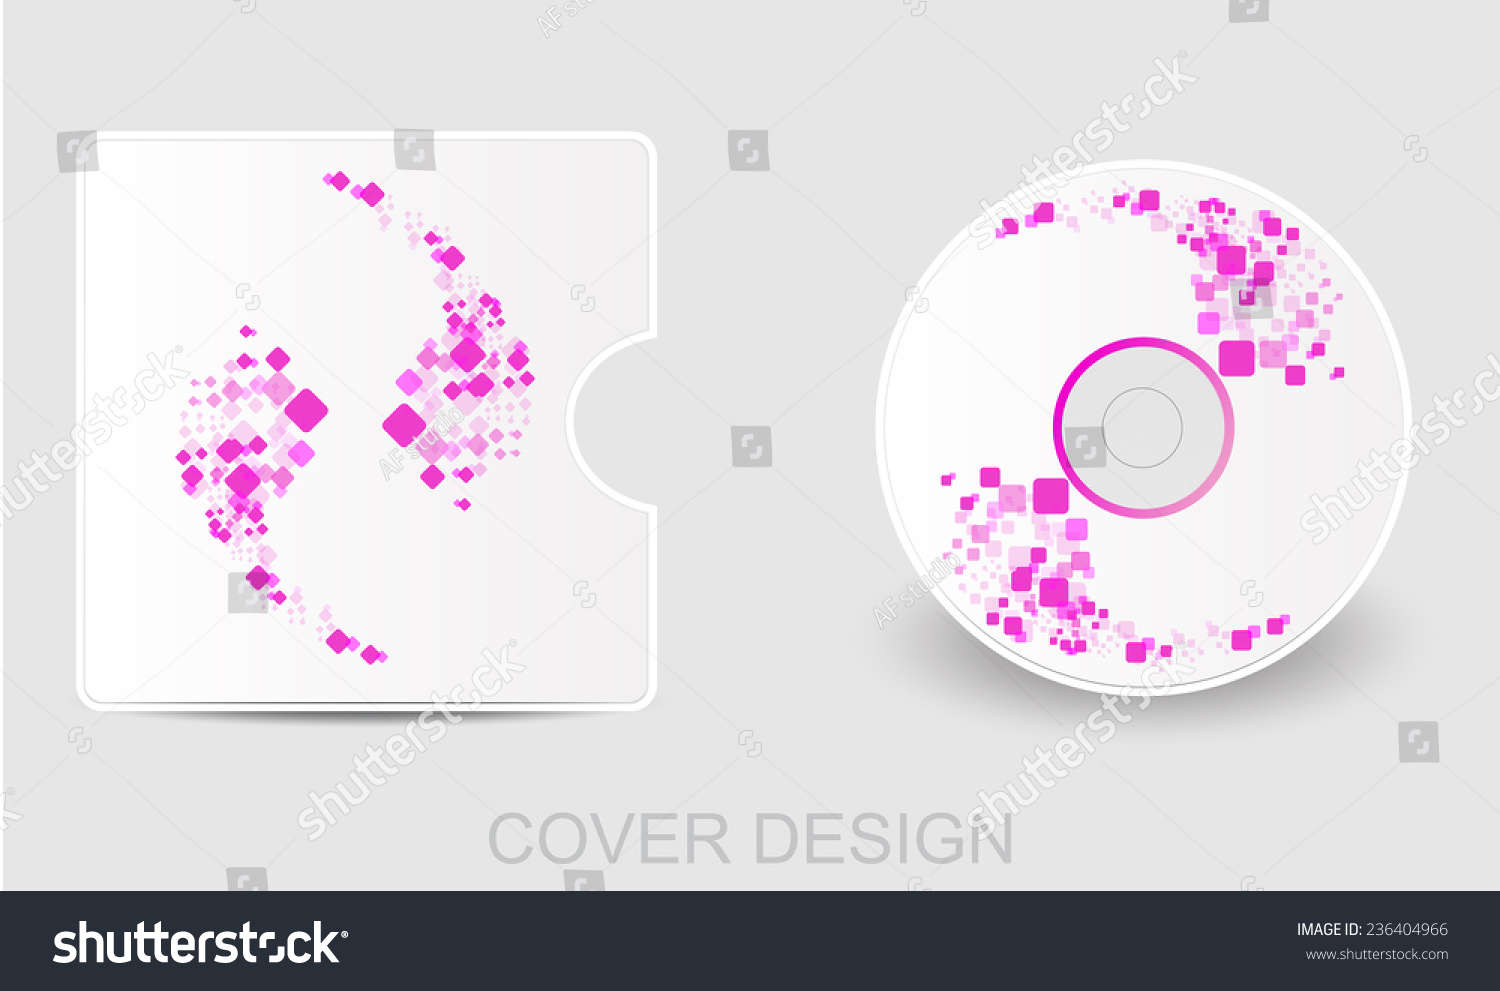 Cd Dvd Bluray White Cover Design Stock Illustration 236404966